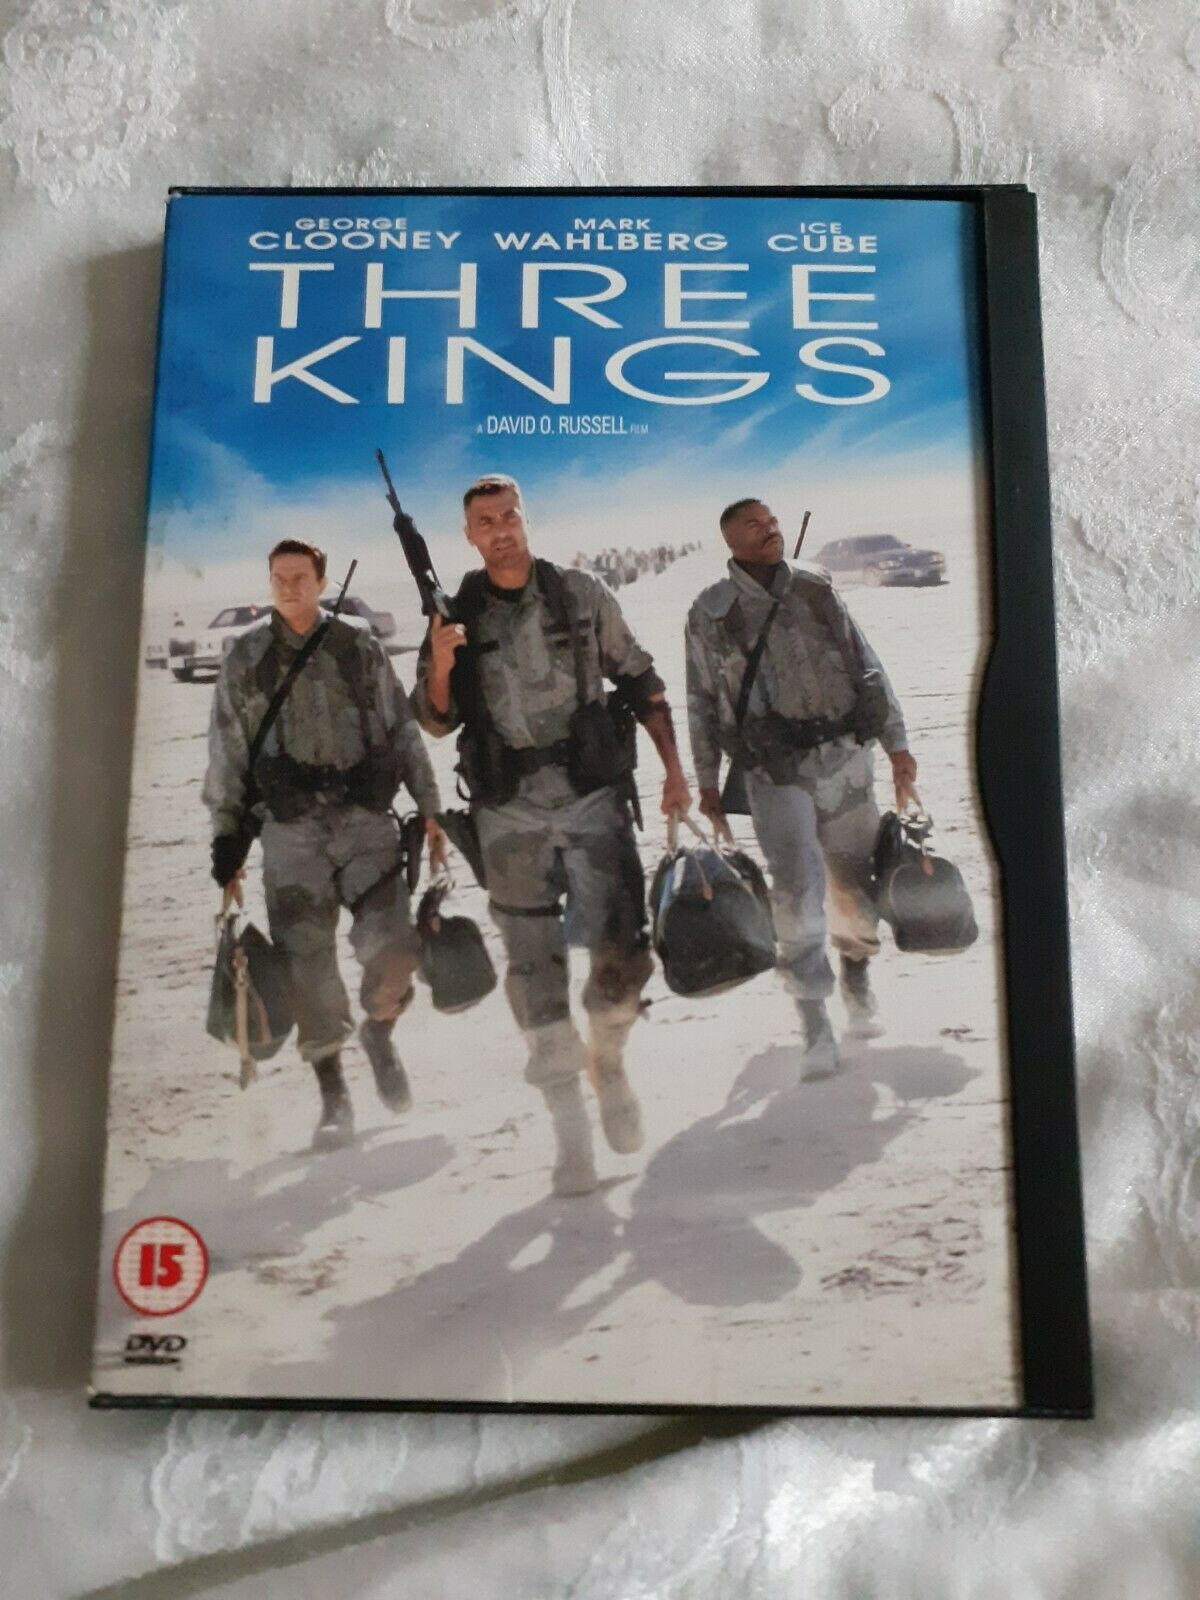 Details About Dvd Three Kings Cert 15 George Clooney Movie Nights